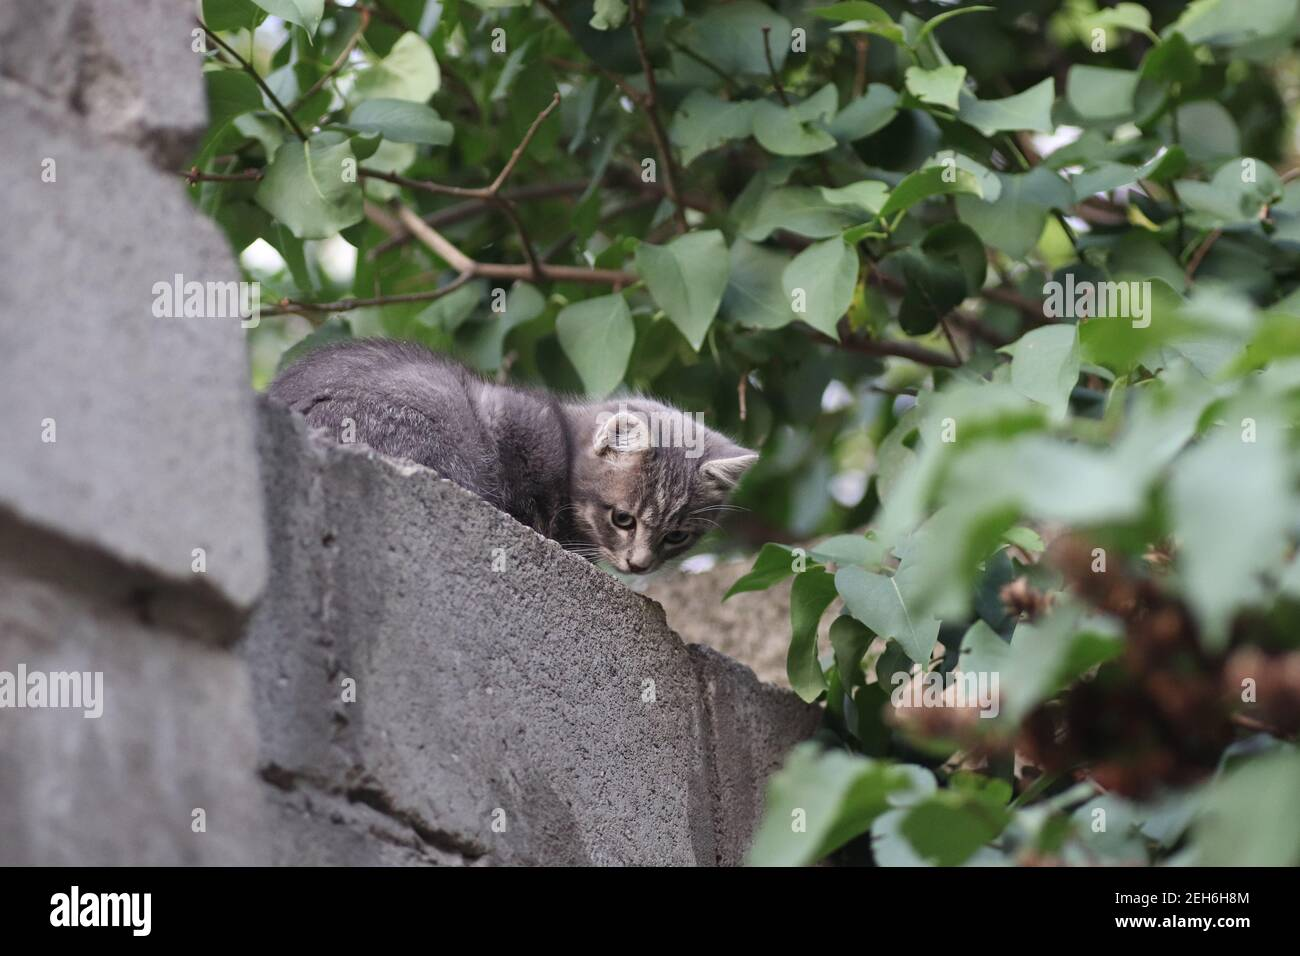 the muzzle of a gray cat on the fence, the cat looks out from above Stock Photo